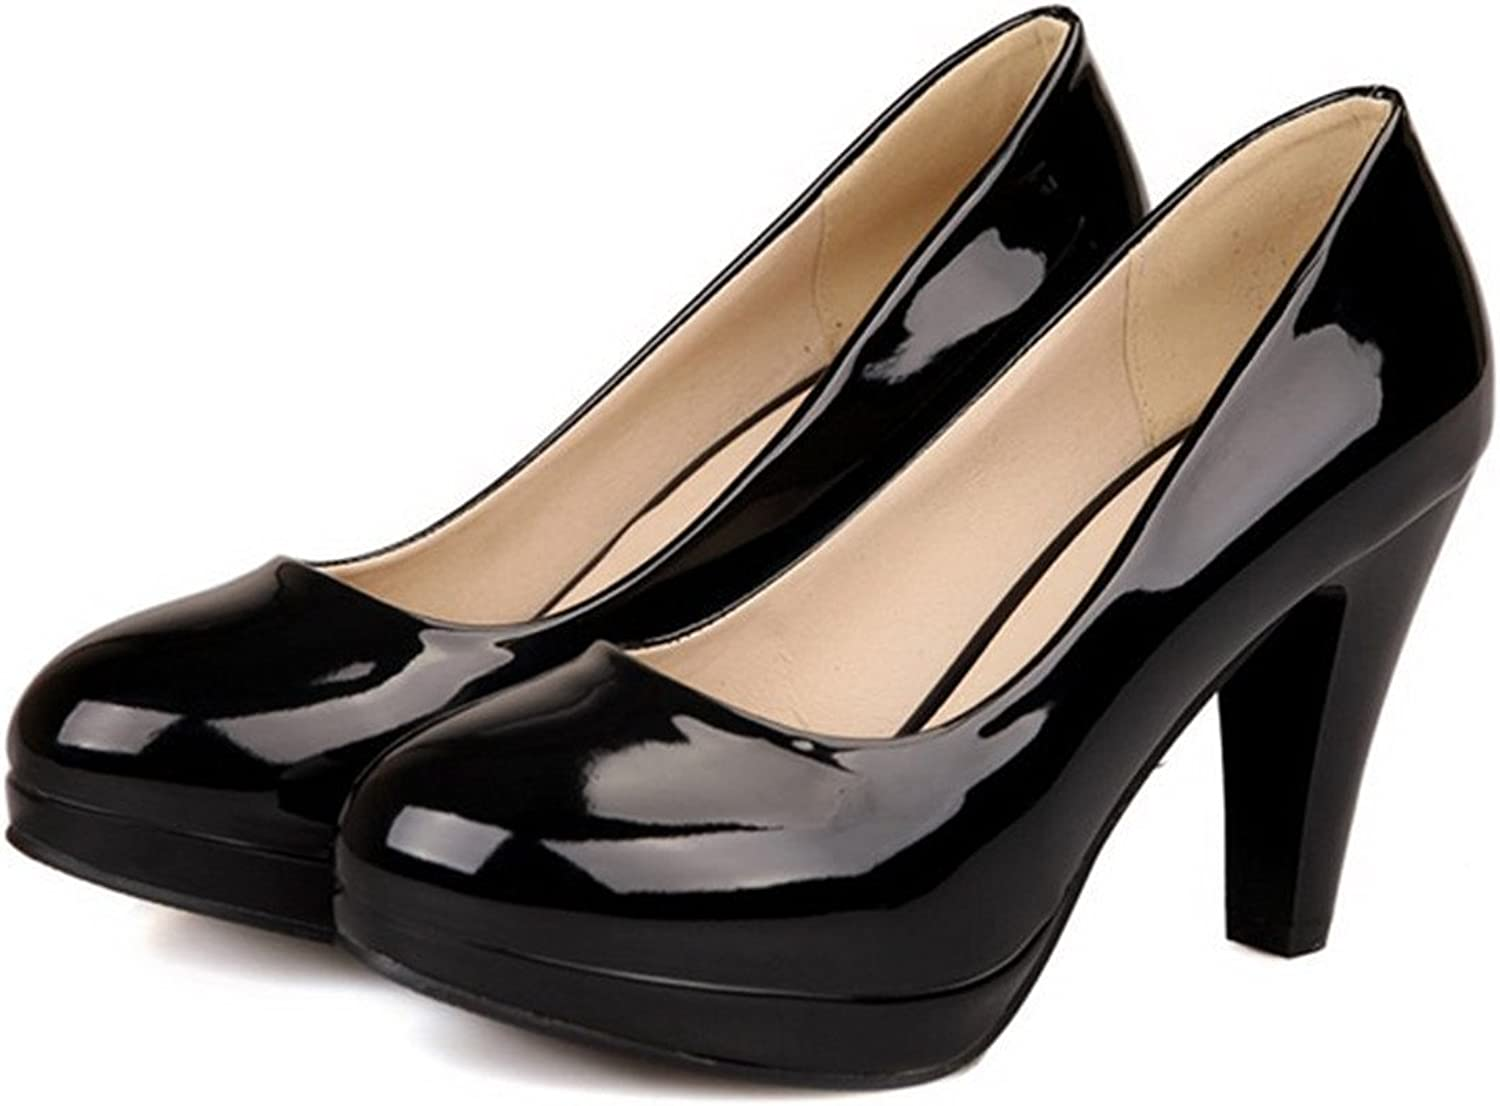 WANabcMAN Comfortable Womens Closed Round Toe High Heel Platform Patent Leather PU Solid Pumps